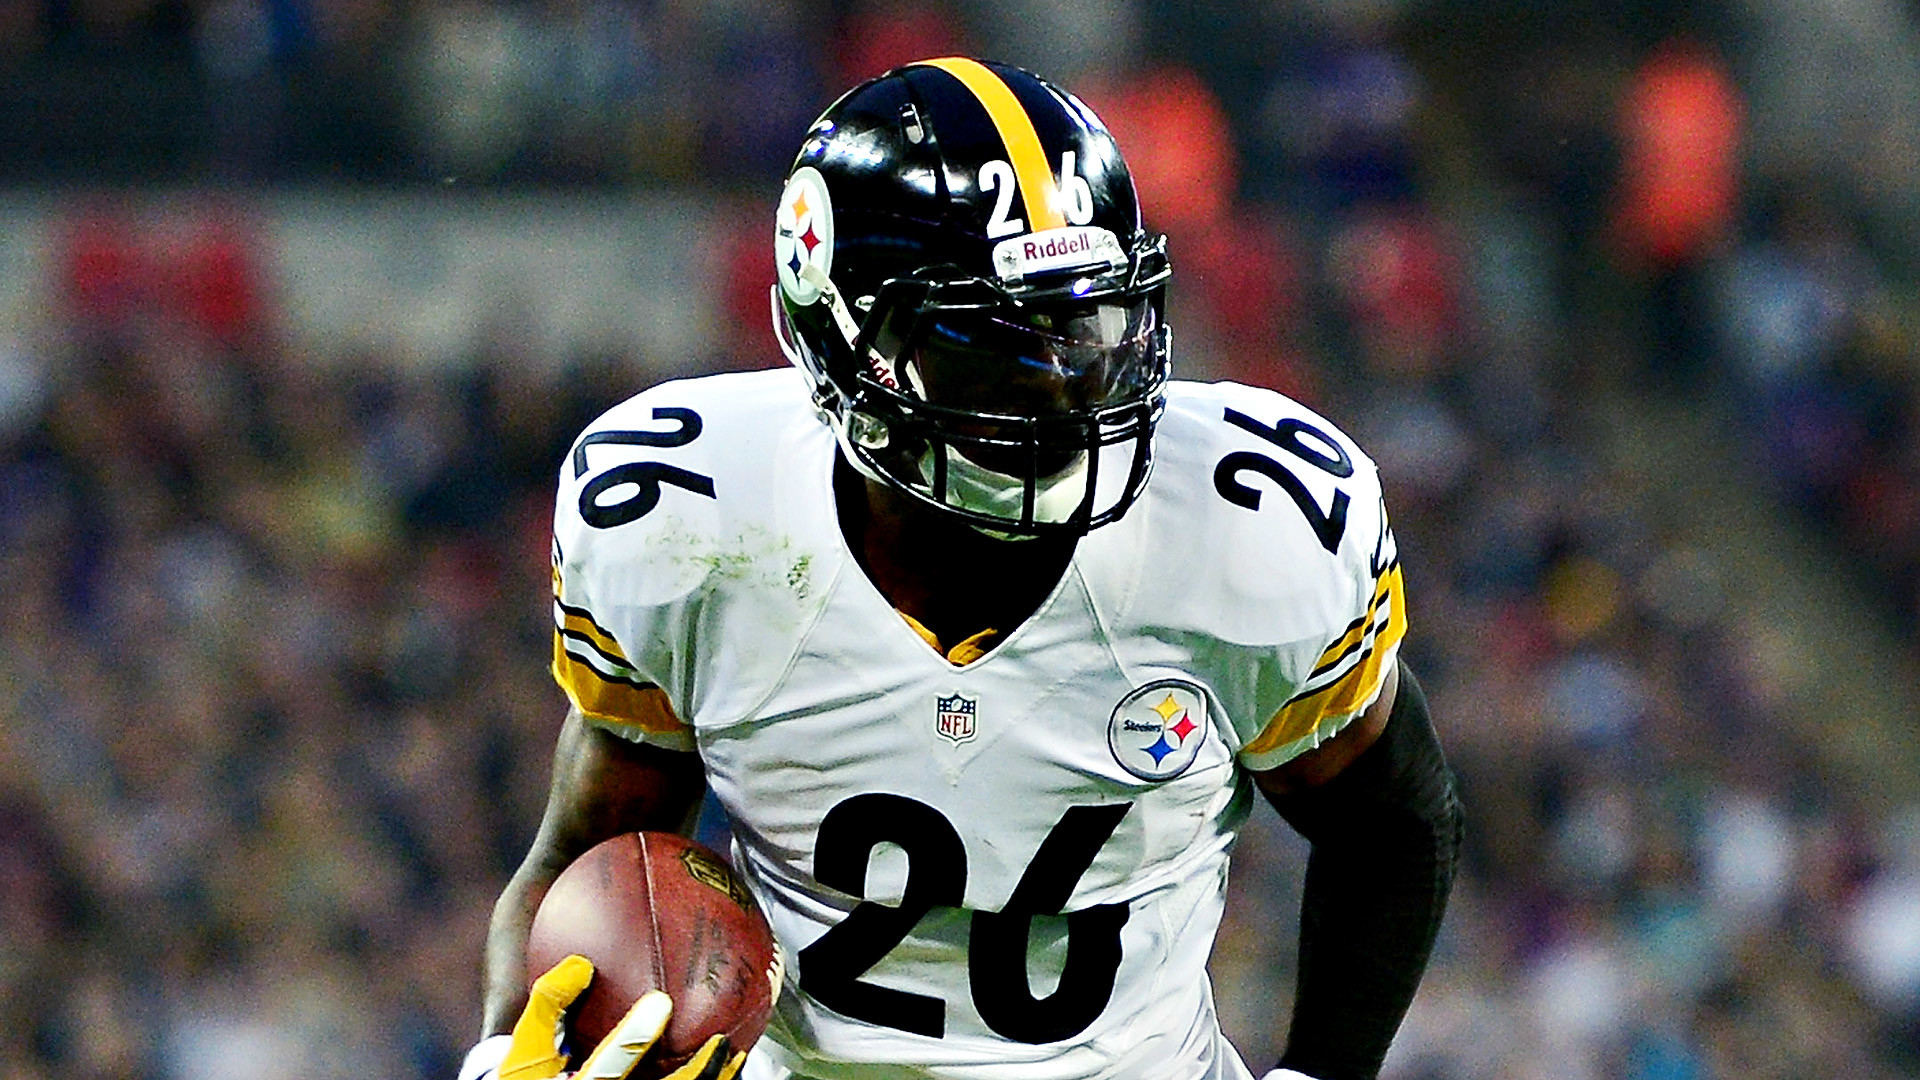 Le'Veon Bell likely to be suspended for first two games | This Given Sunday